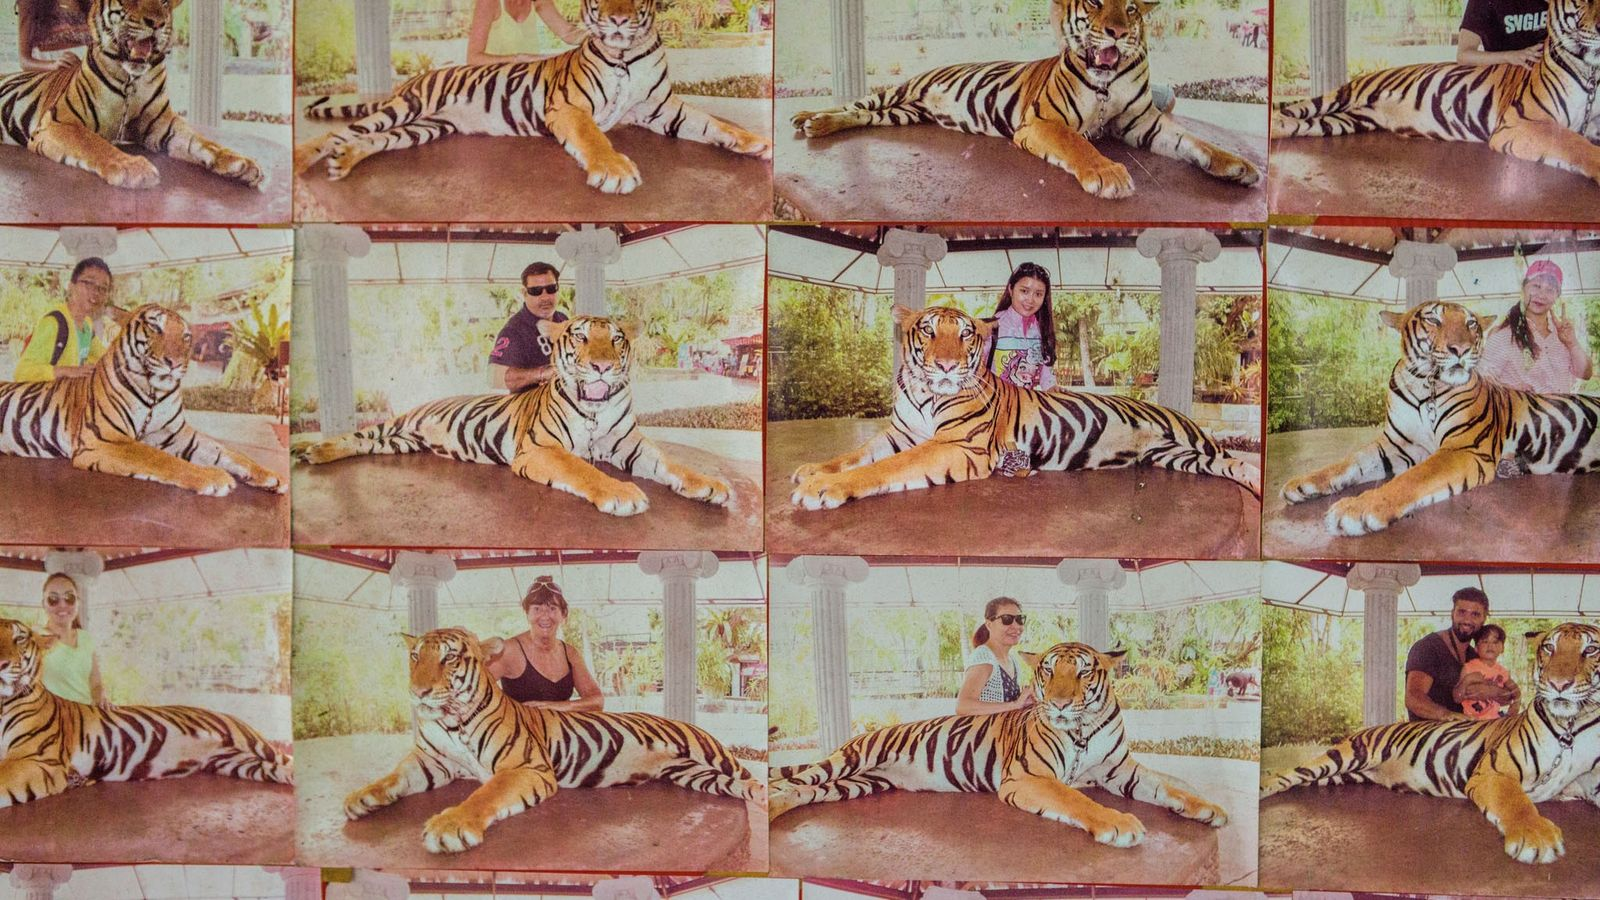 For $10, tourists can pose with this tiger at Phuket Zoo, in Thailand. Examples of souvenir ...